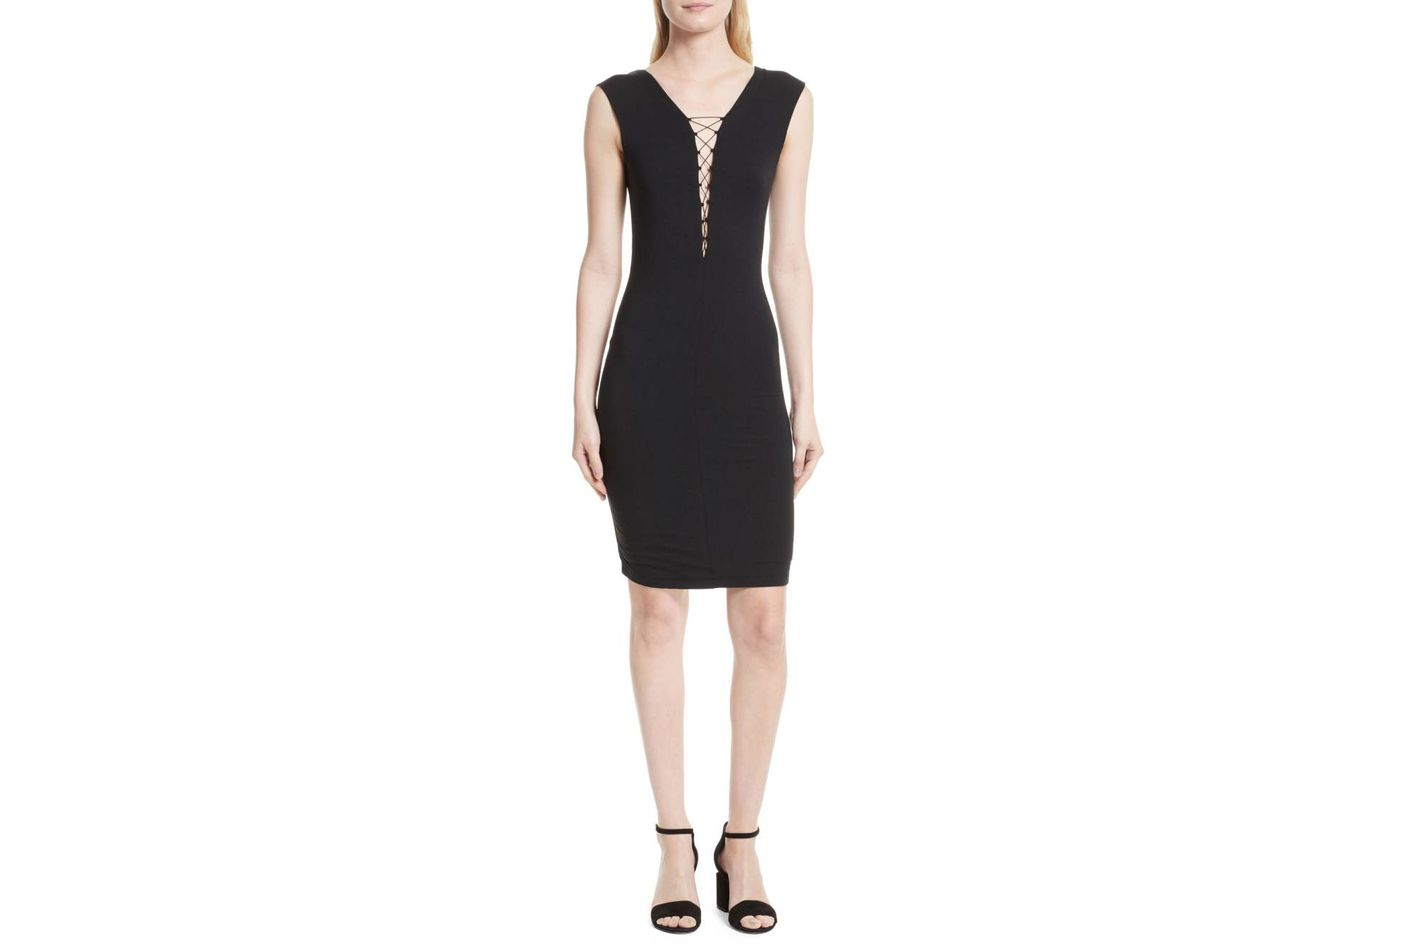 T by Alexander Wang Lace-Up Dress